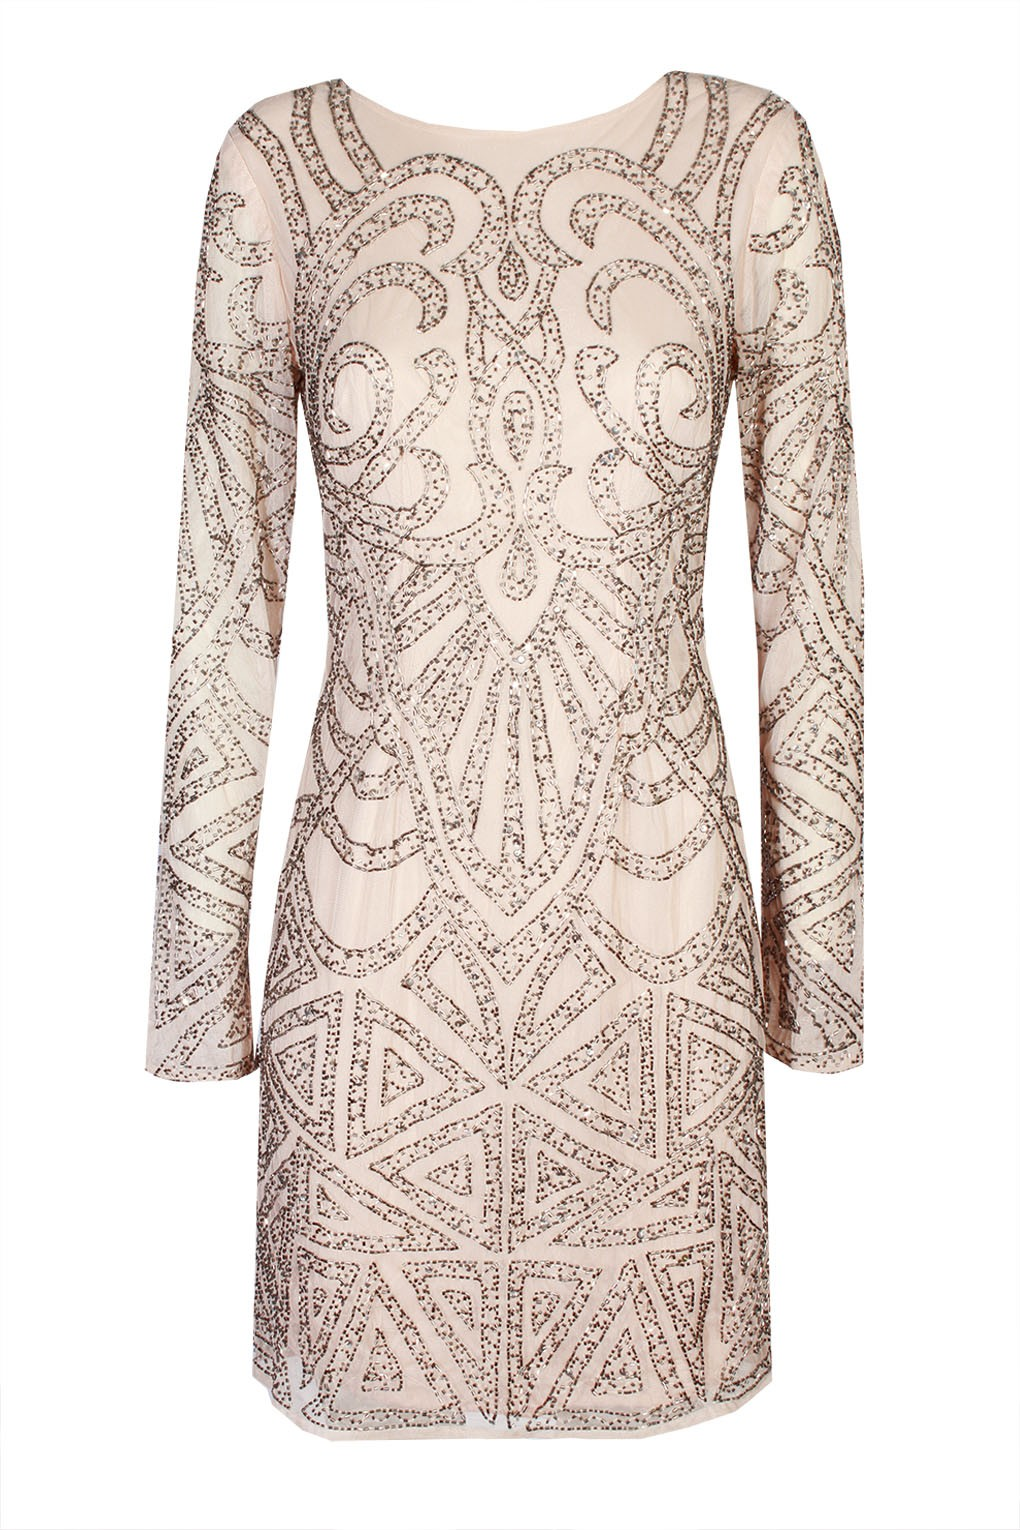 LACE Amp BEADS BROOKLYN PINK EMBELLISHED DRESS